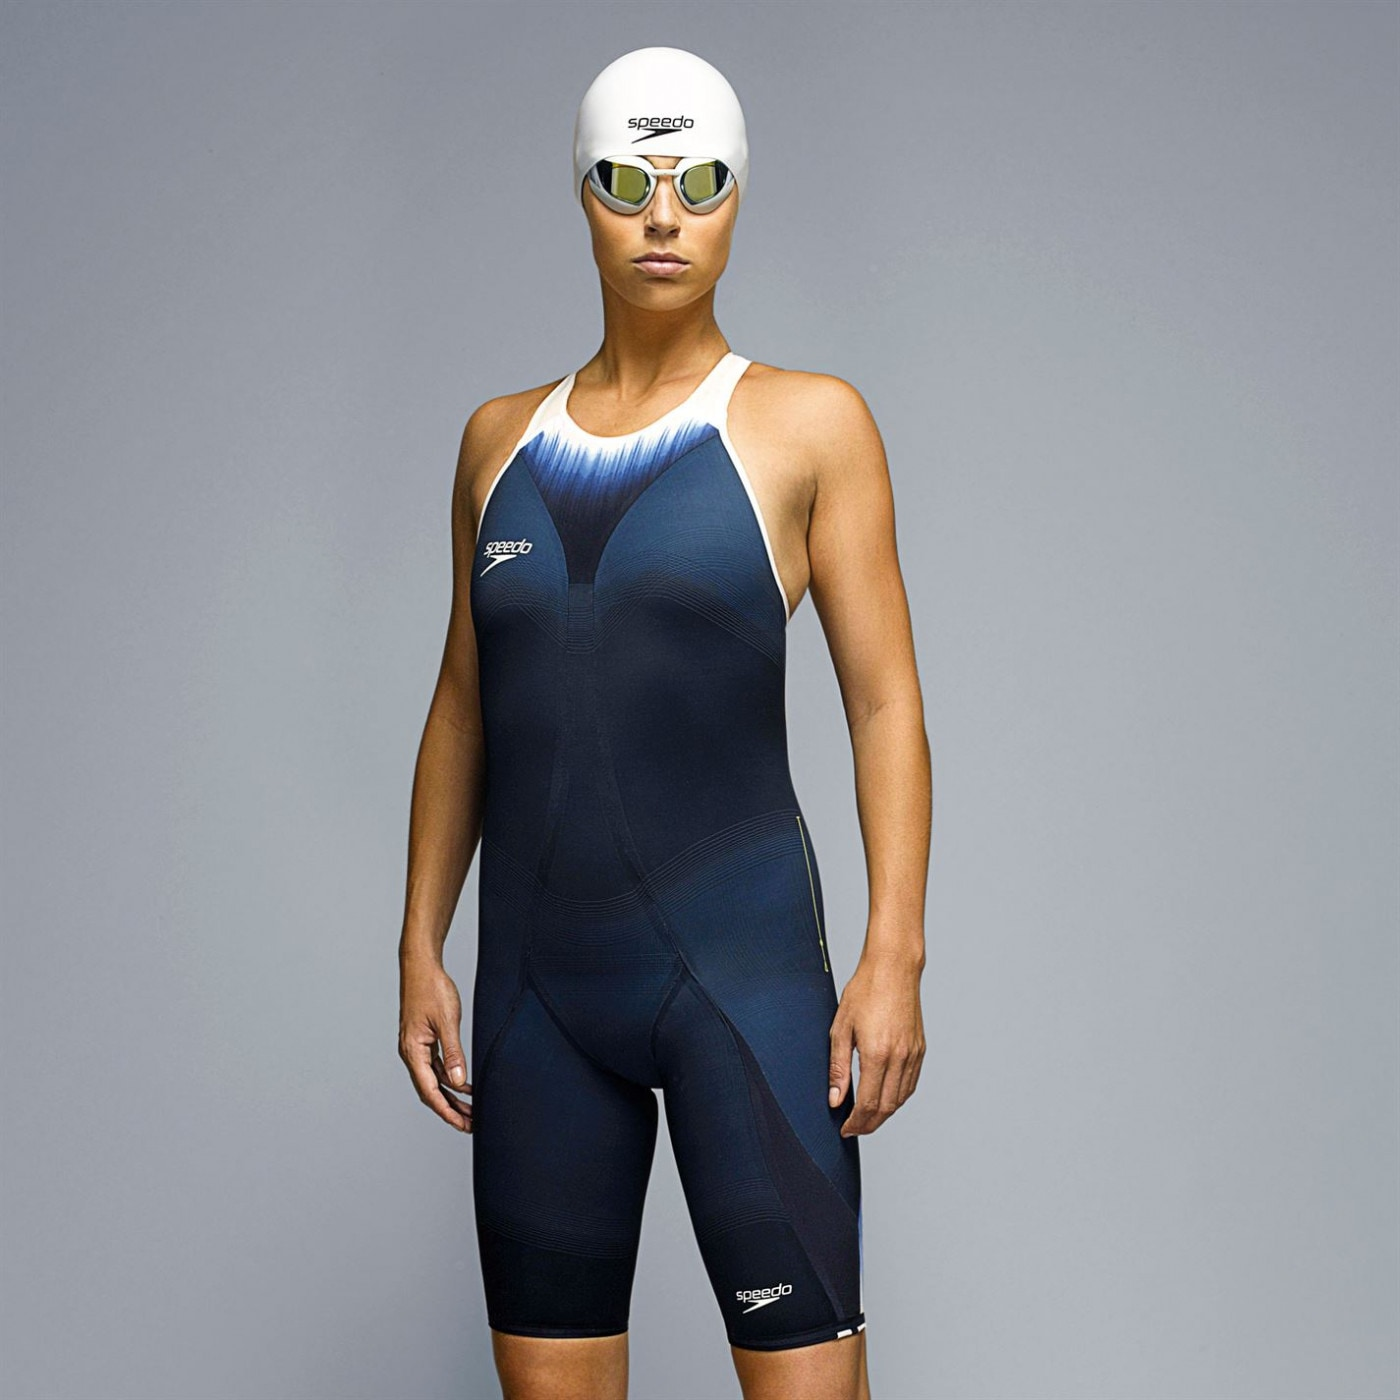 Speedo Super Elite Fastskin Triathlon Suit Ladies